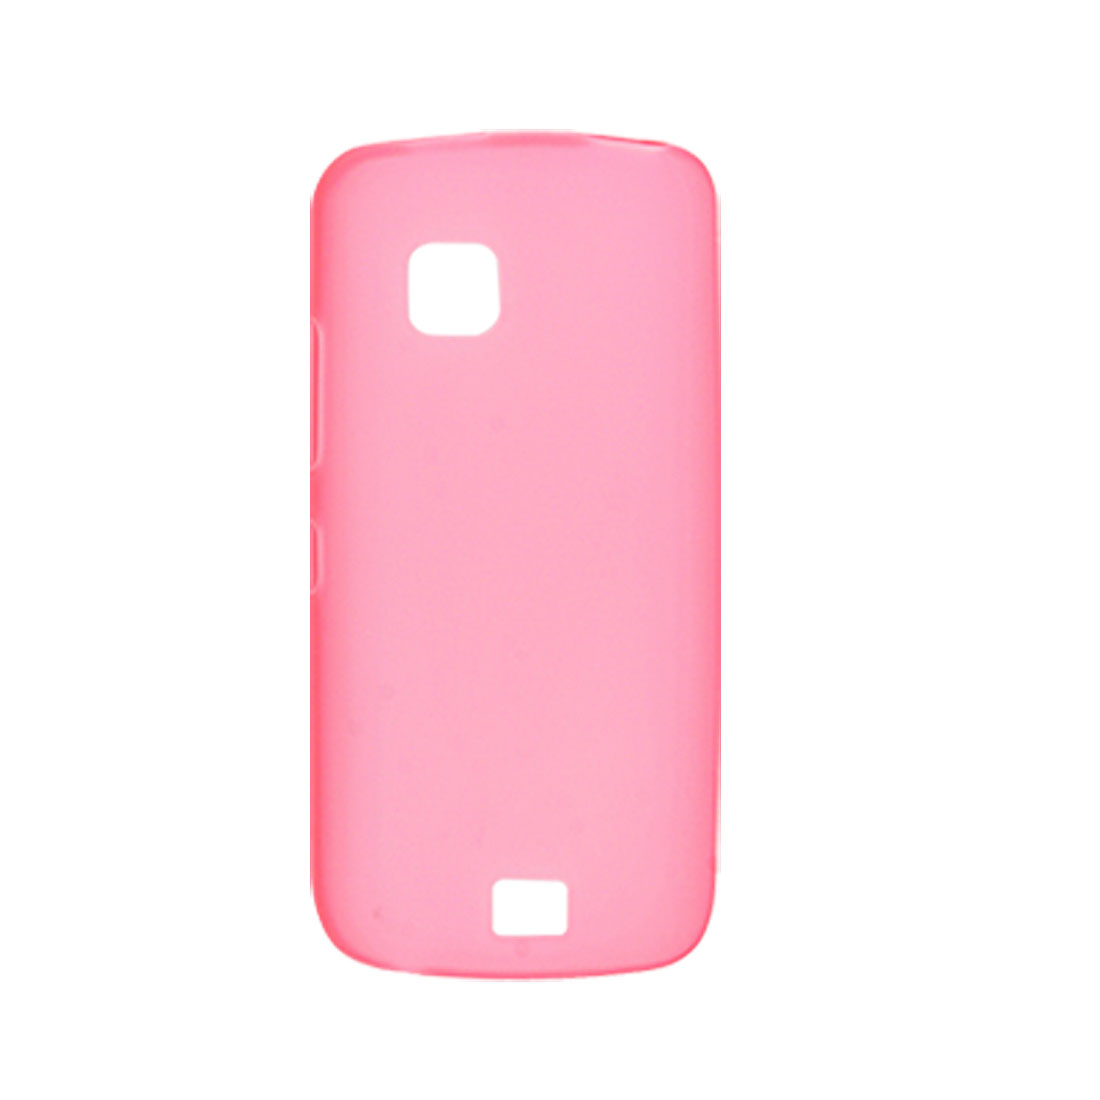 Protective Pink Soft Plastic Case Guard for Nokia C5-03